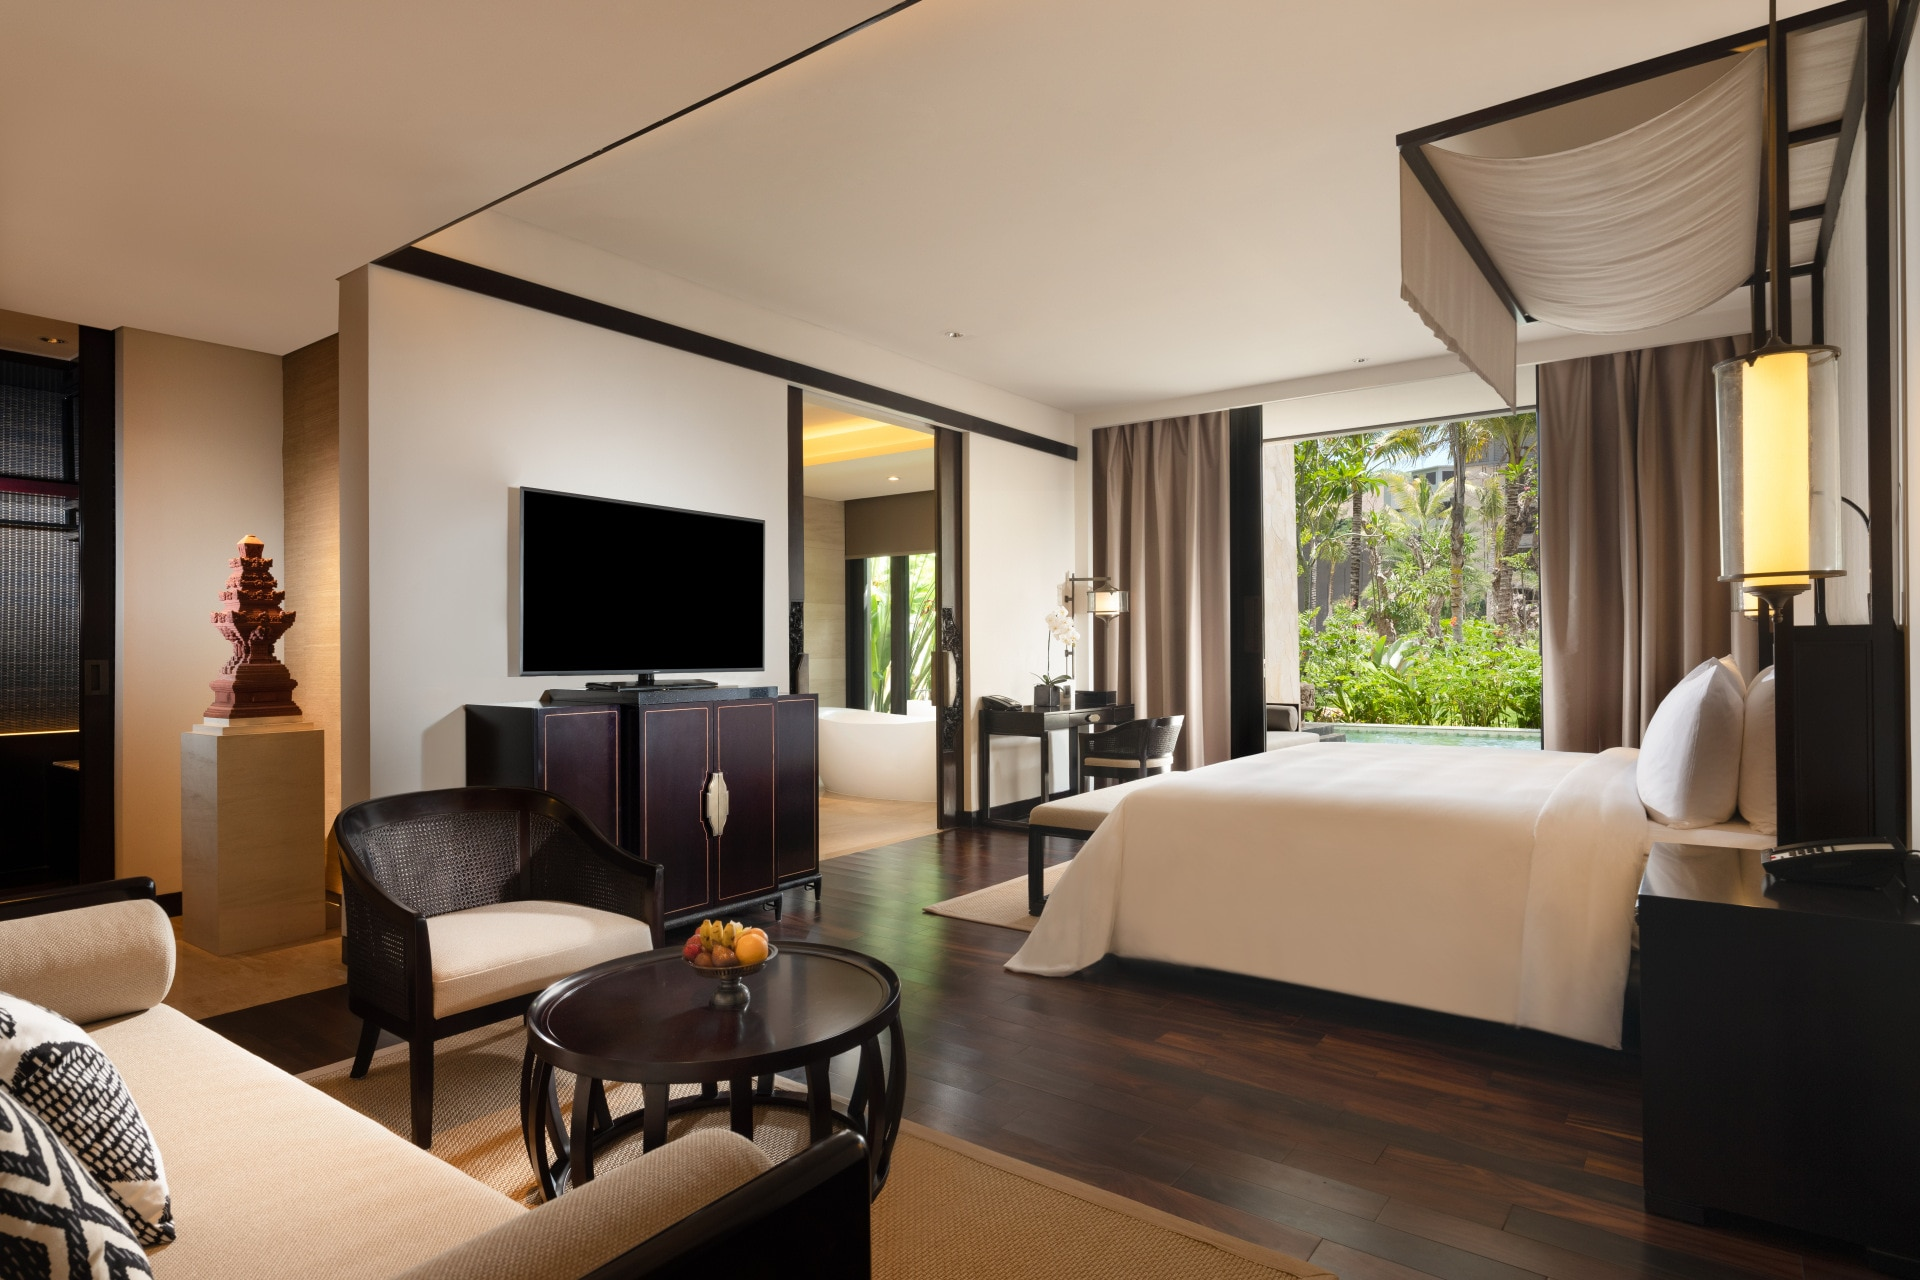 Bali's grandest new hotel is a lesson in Indonesian opulence